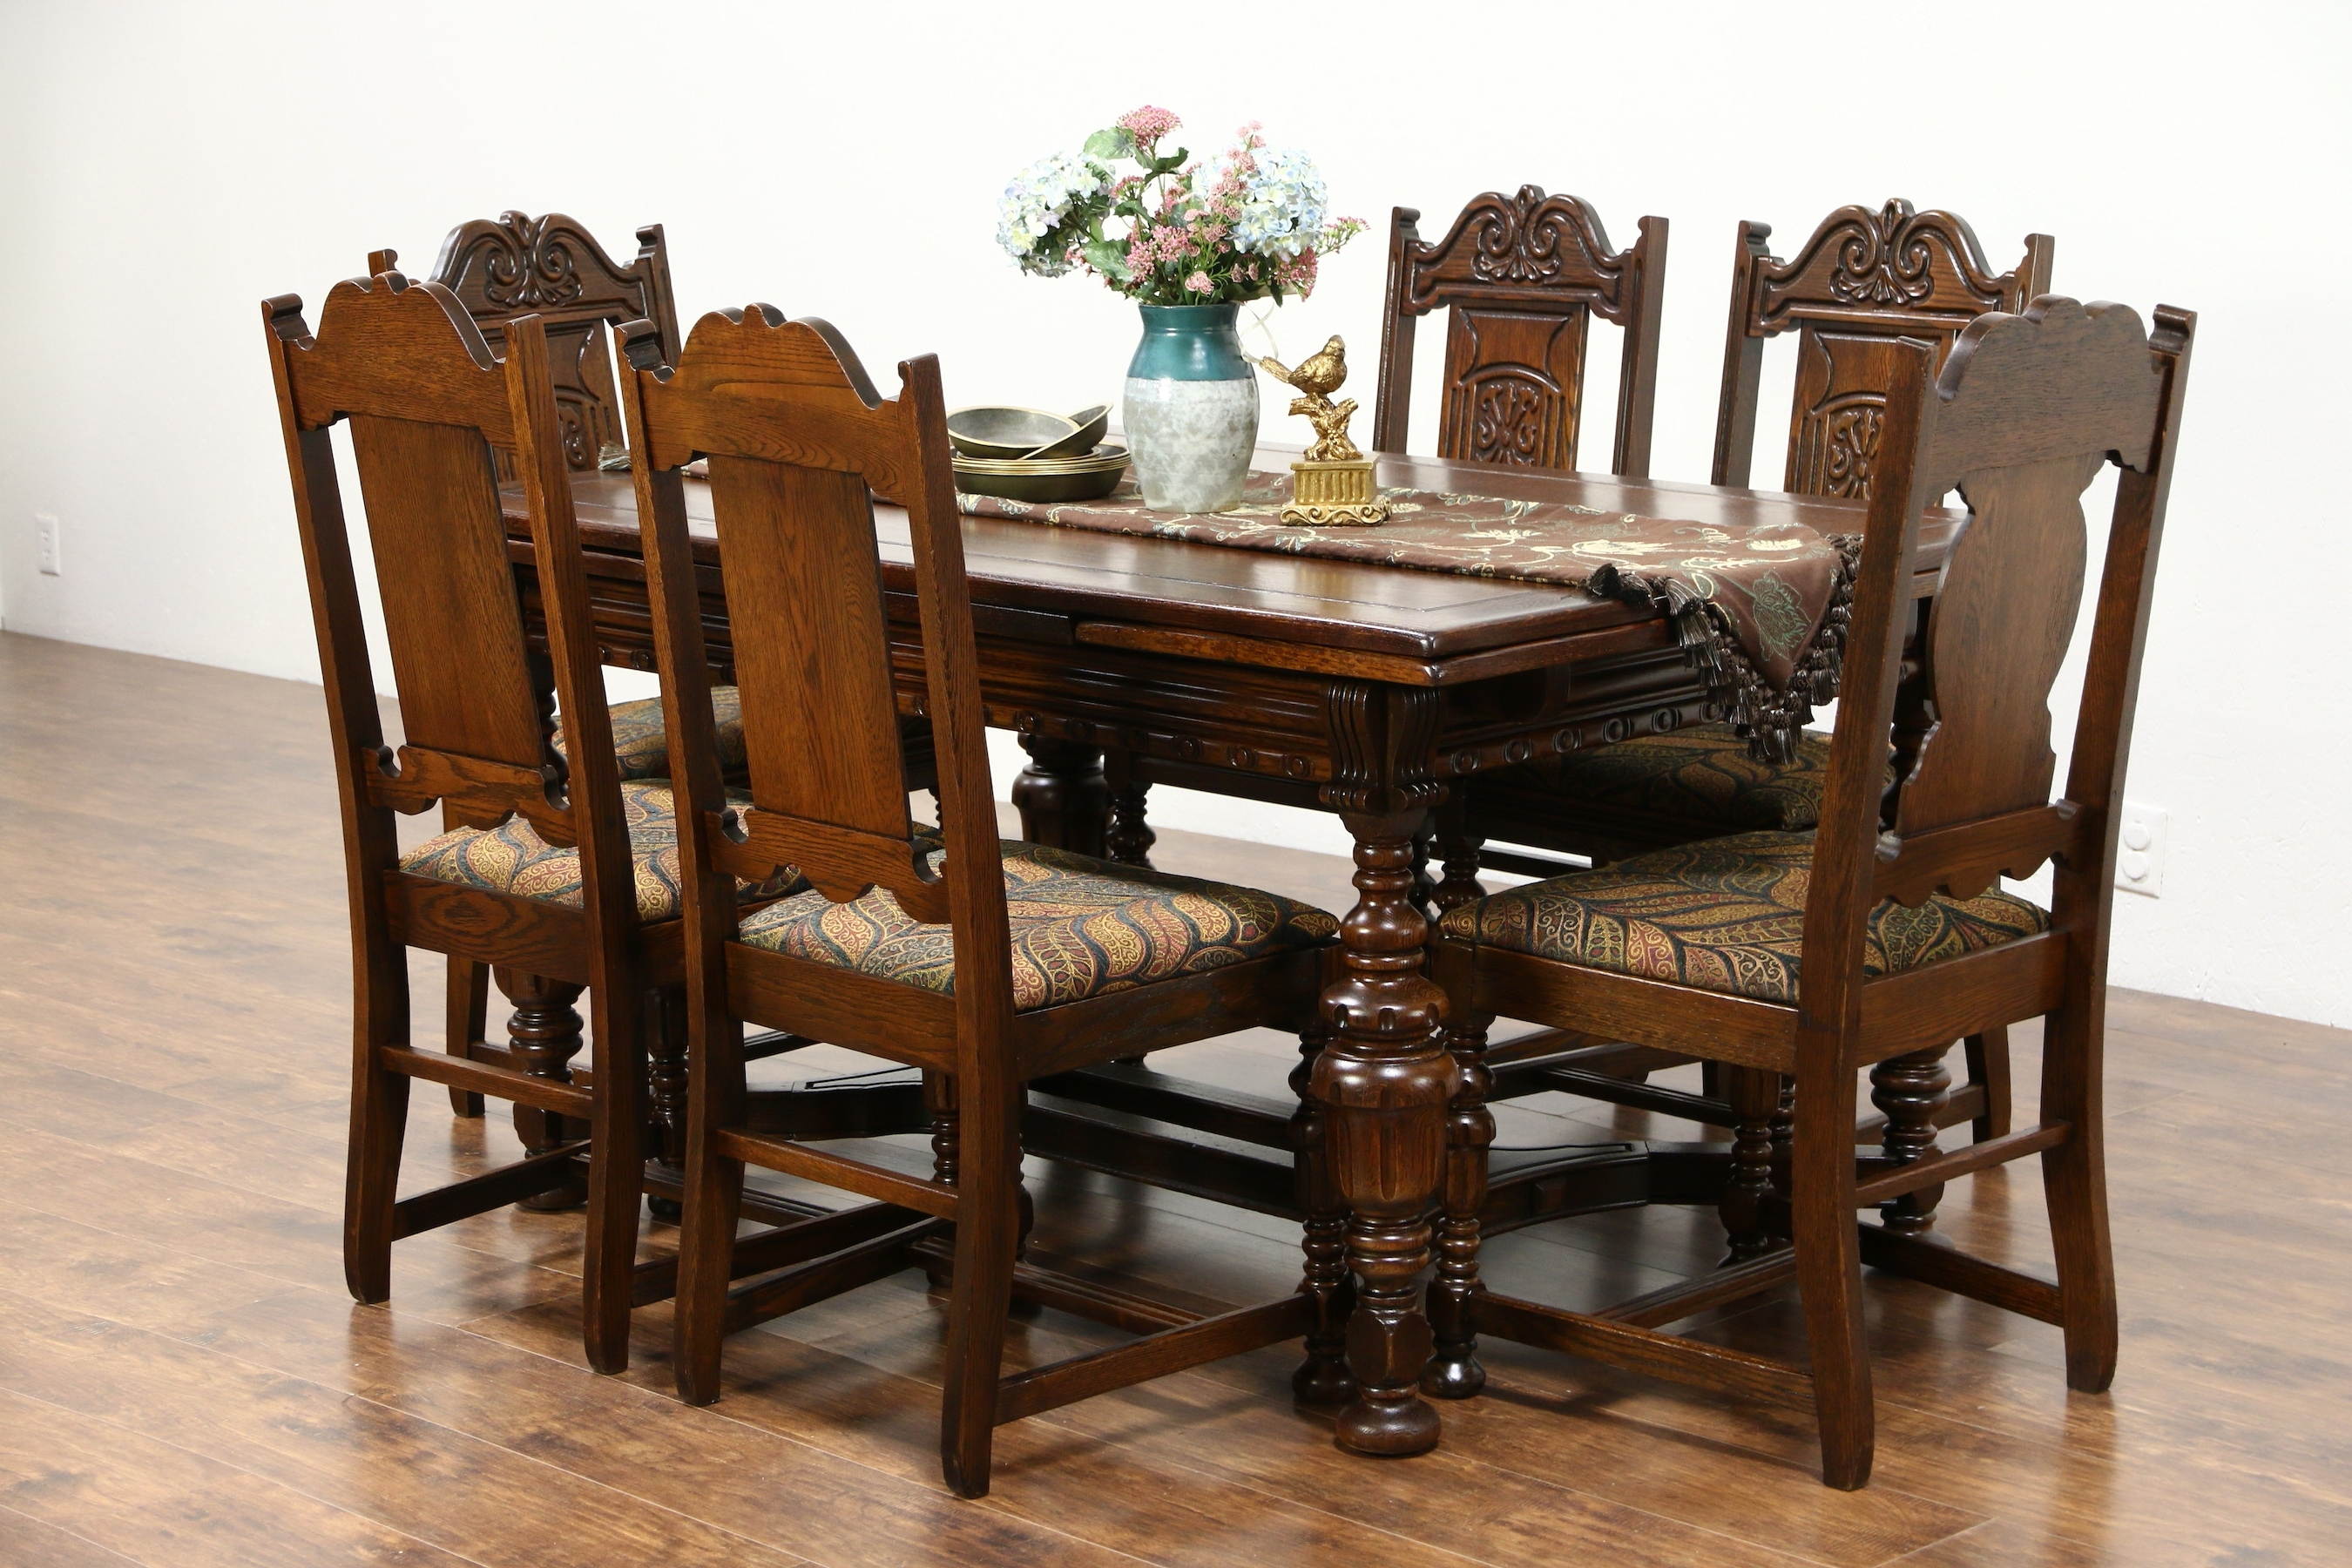 Latest Sold – Tudor 1925 Antique Carved Oak Dining Set, Table, 6 Chairs Within Oak Dining Tables With 6 Chairs (View 8 of 25)